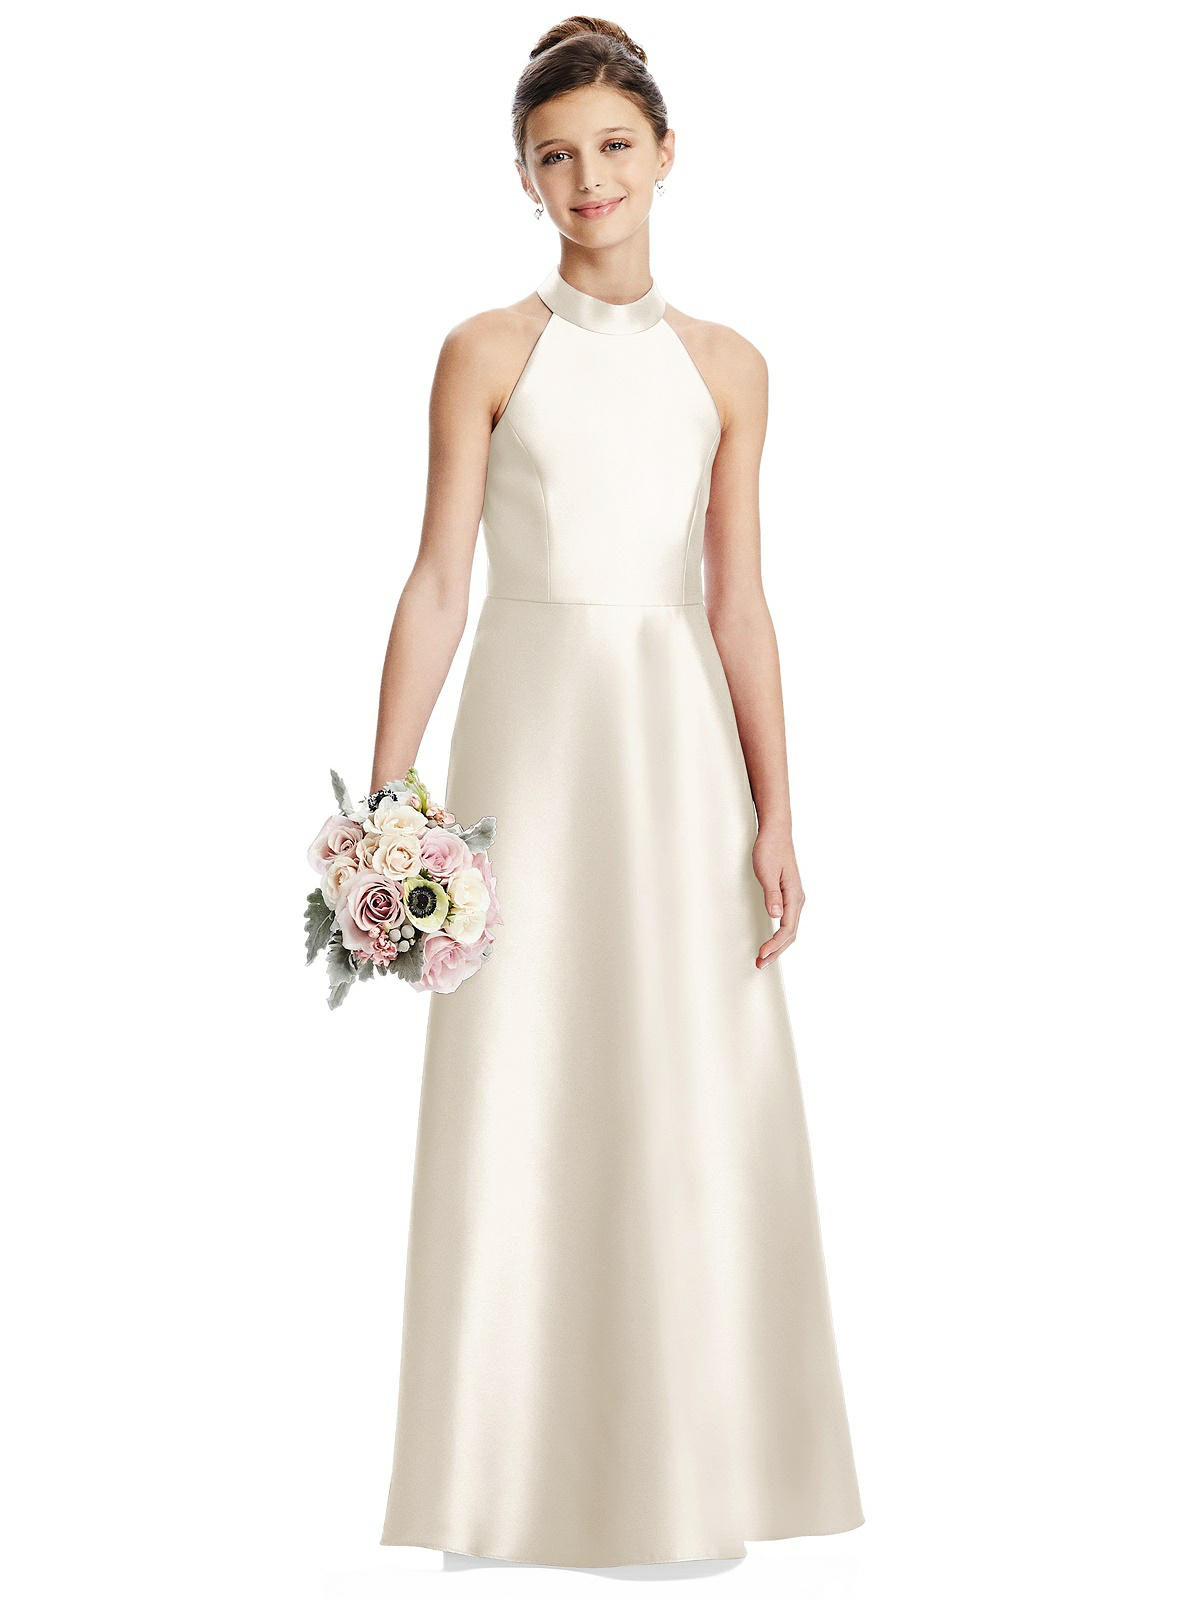 Ivory Satin Halter Neck Junior Bridesmaids Dress